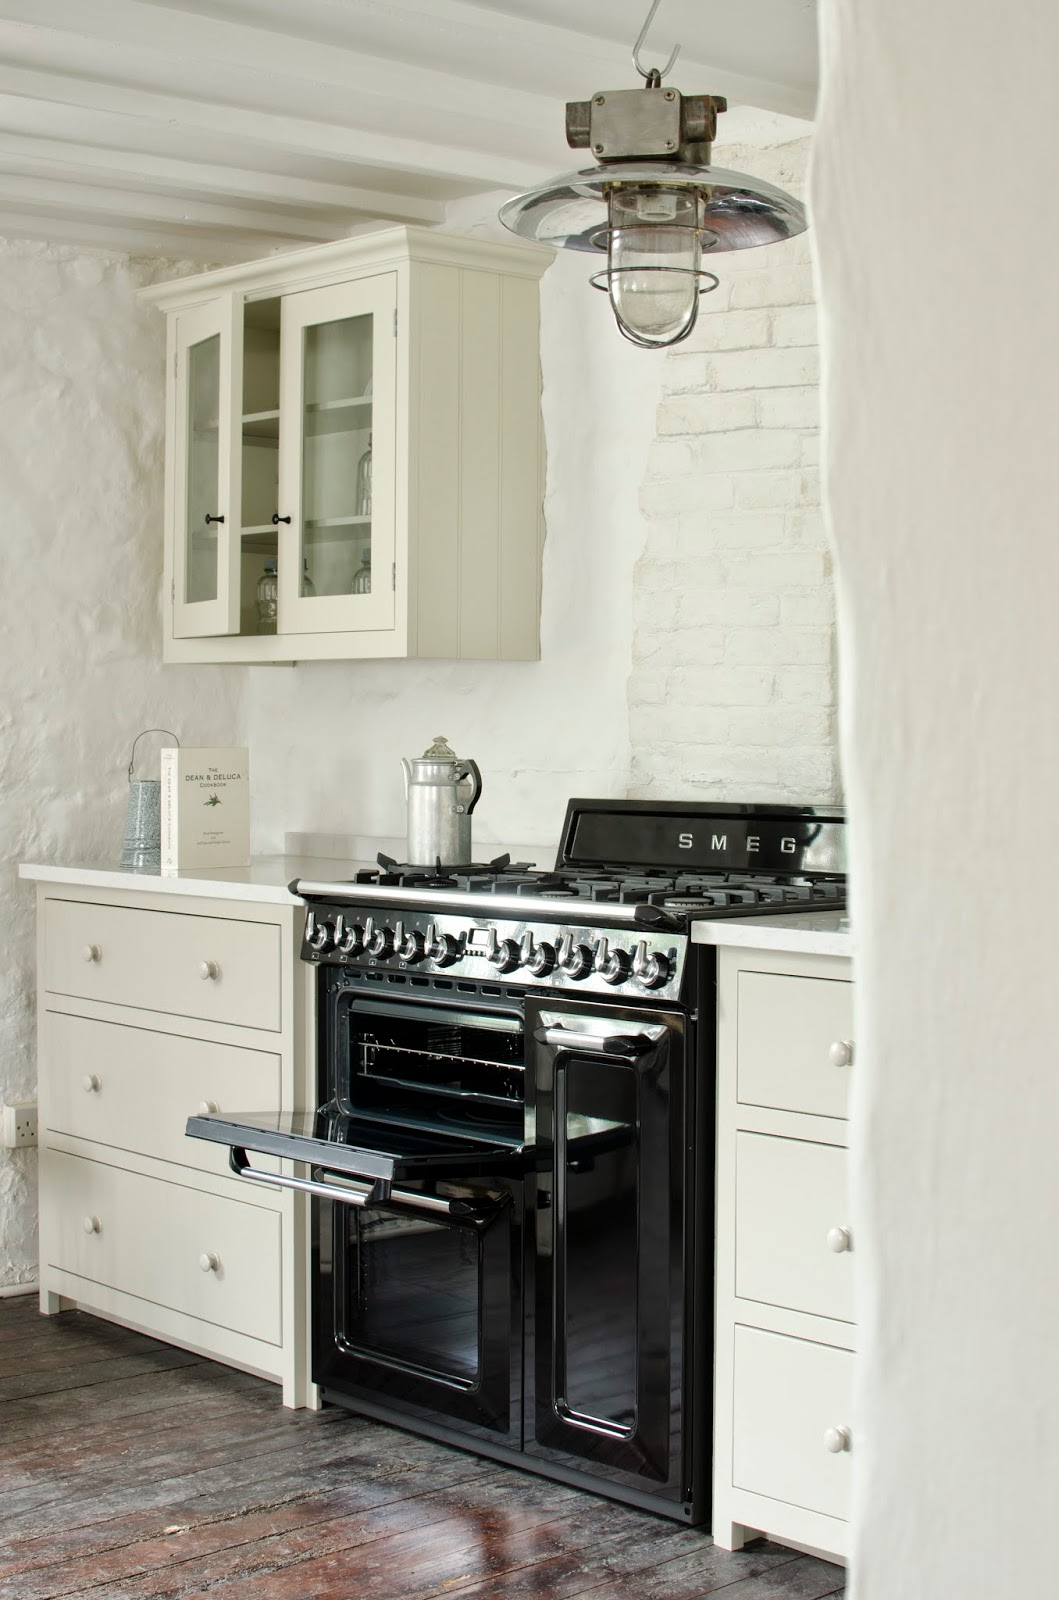 Modern Country Style: Modern Country Loves: Smeg Victoria Range Cooker